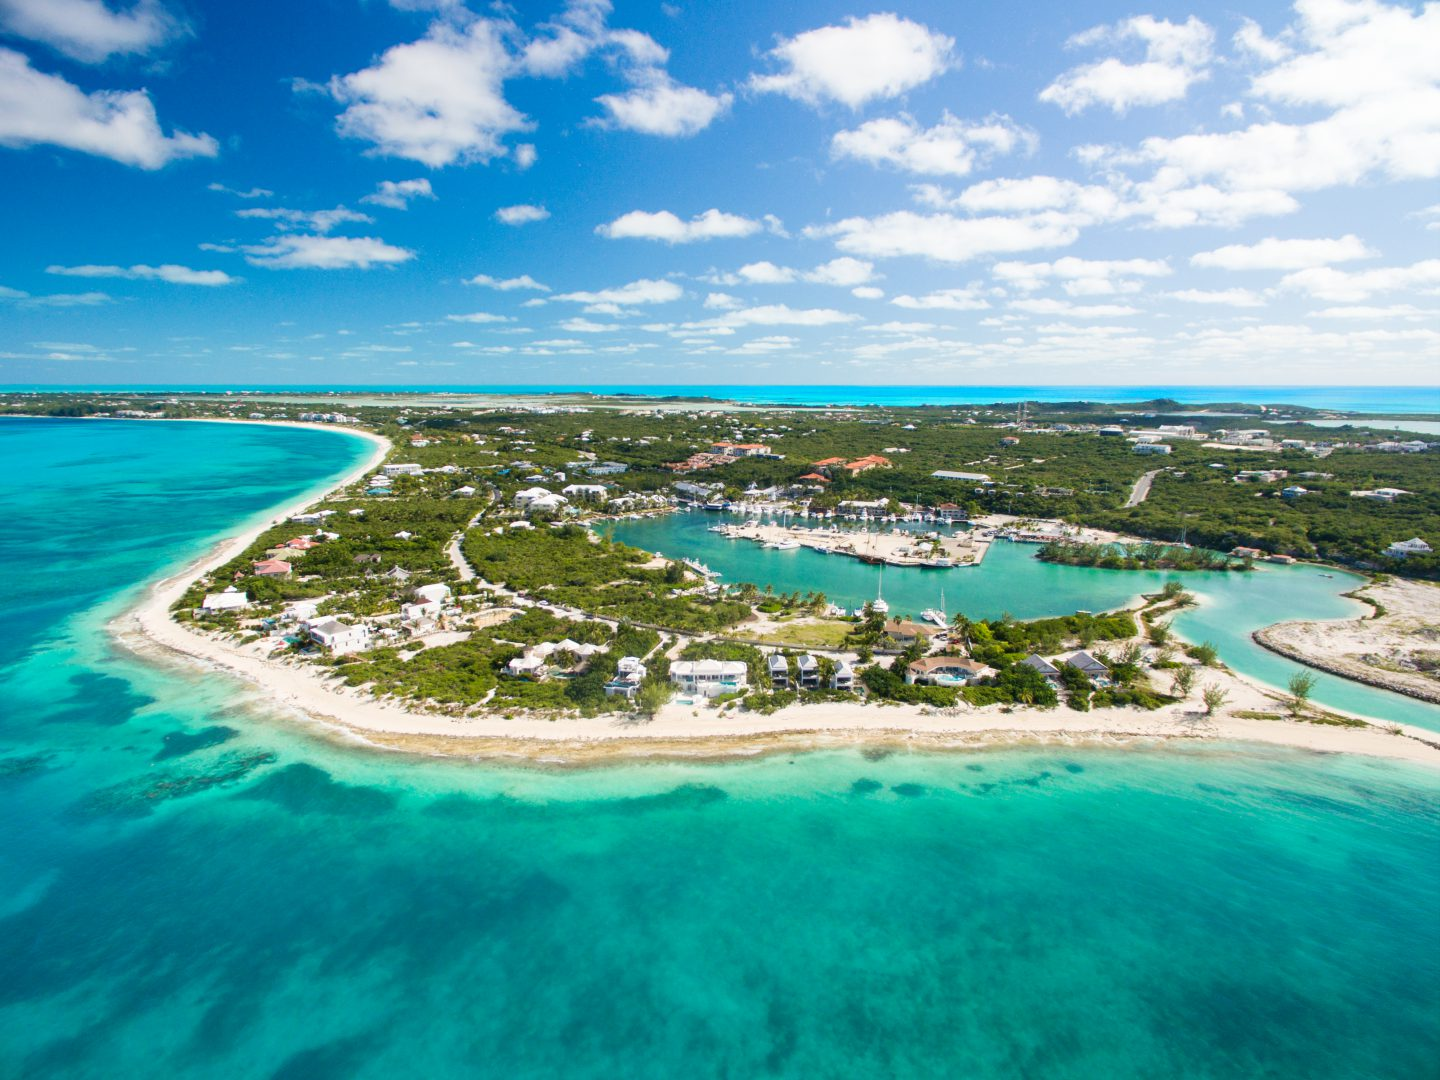 6 fun activities to do in turks and caicos | toronto caribbean newspaper